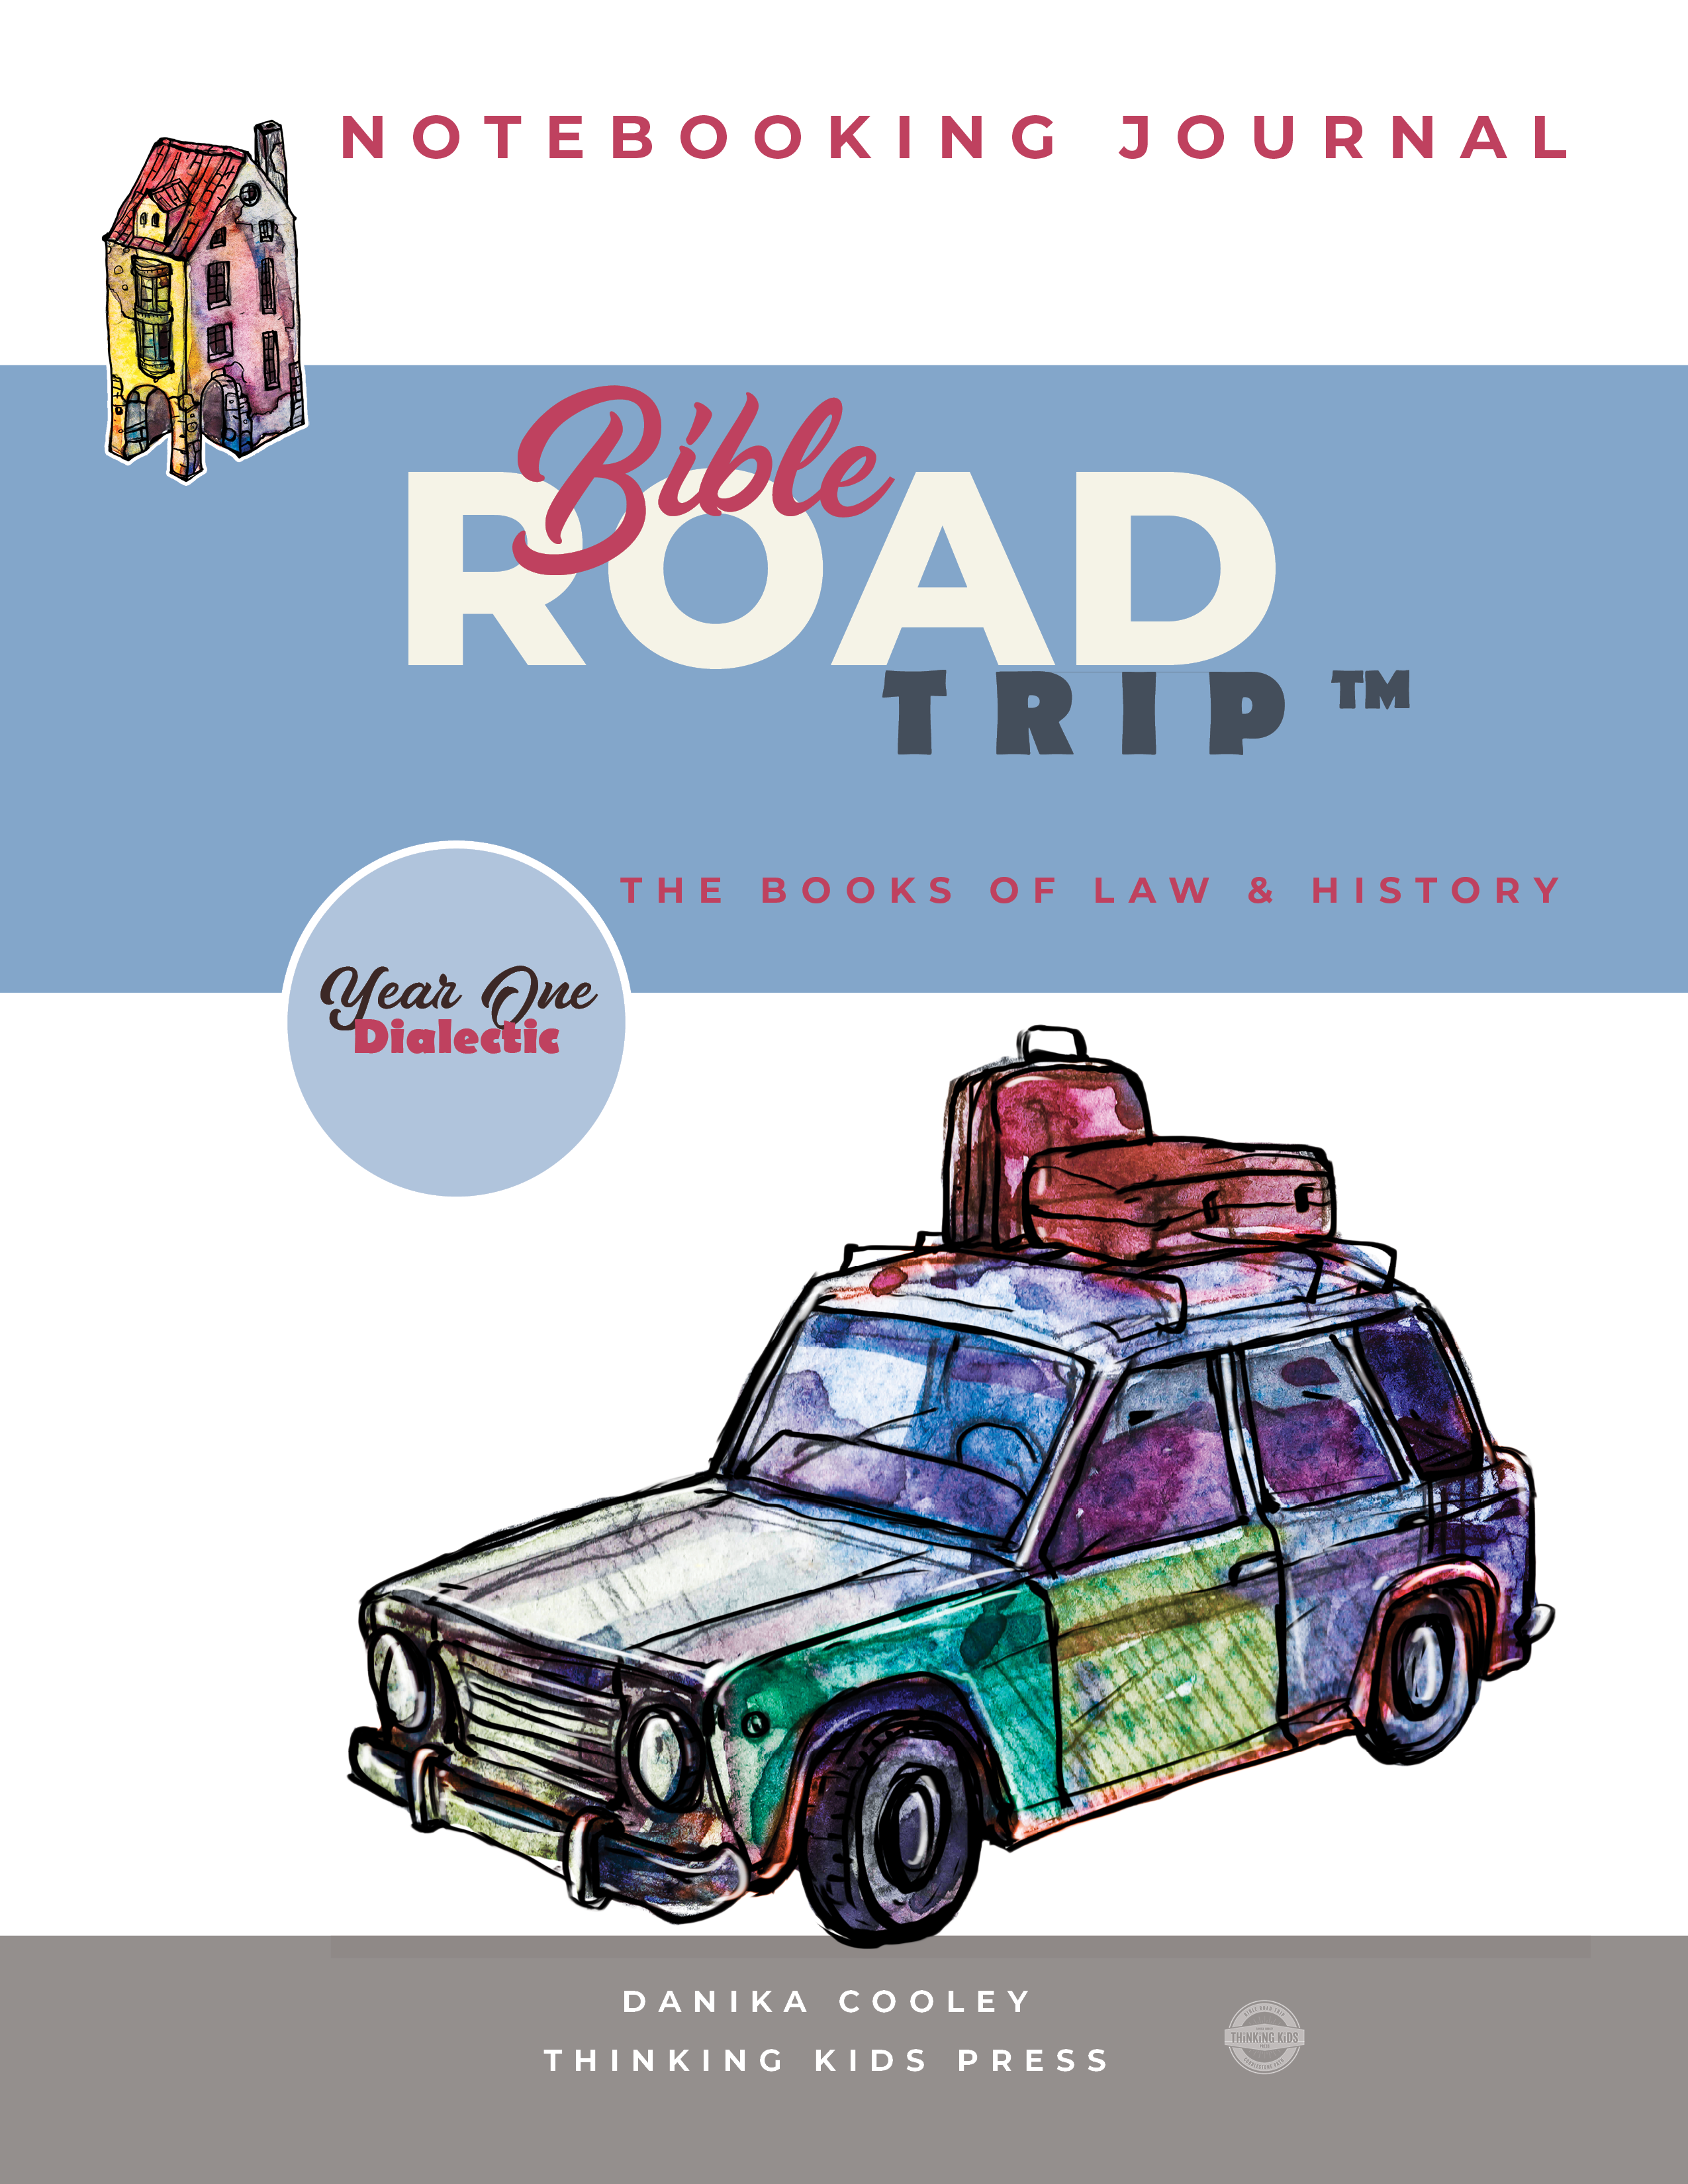 Bible Road Trip™ Year One Dialectic Notebooking Journal